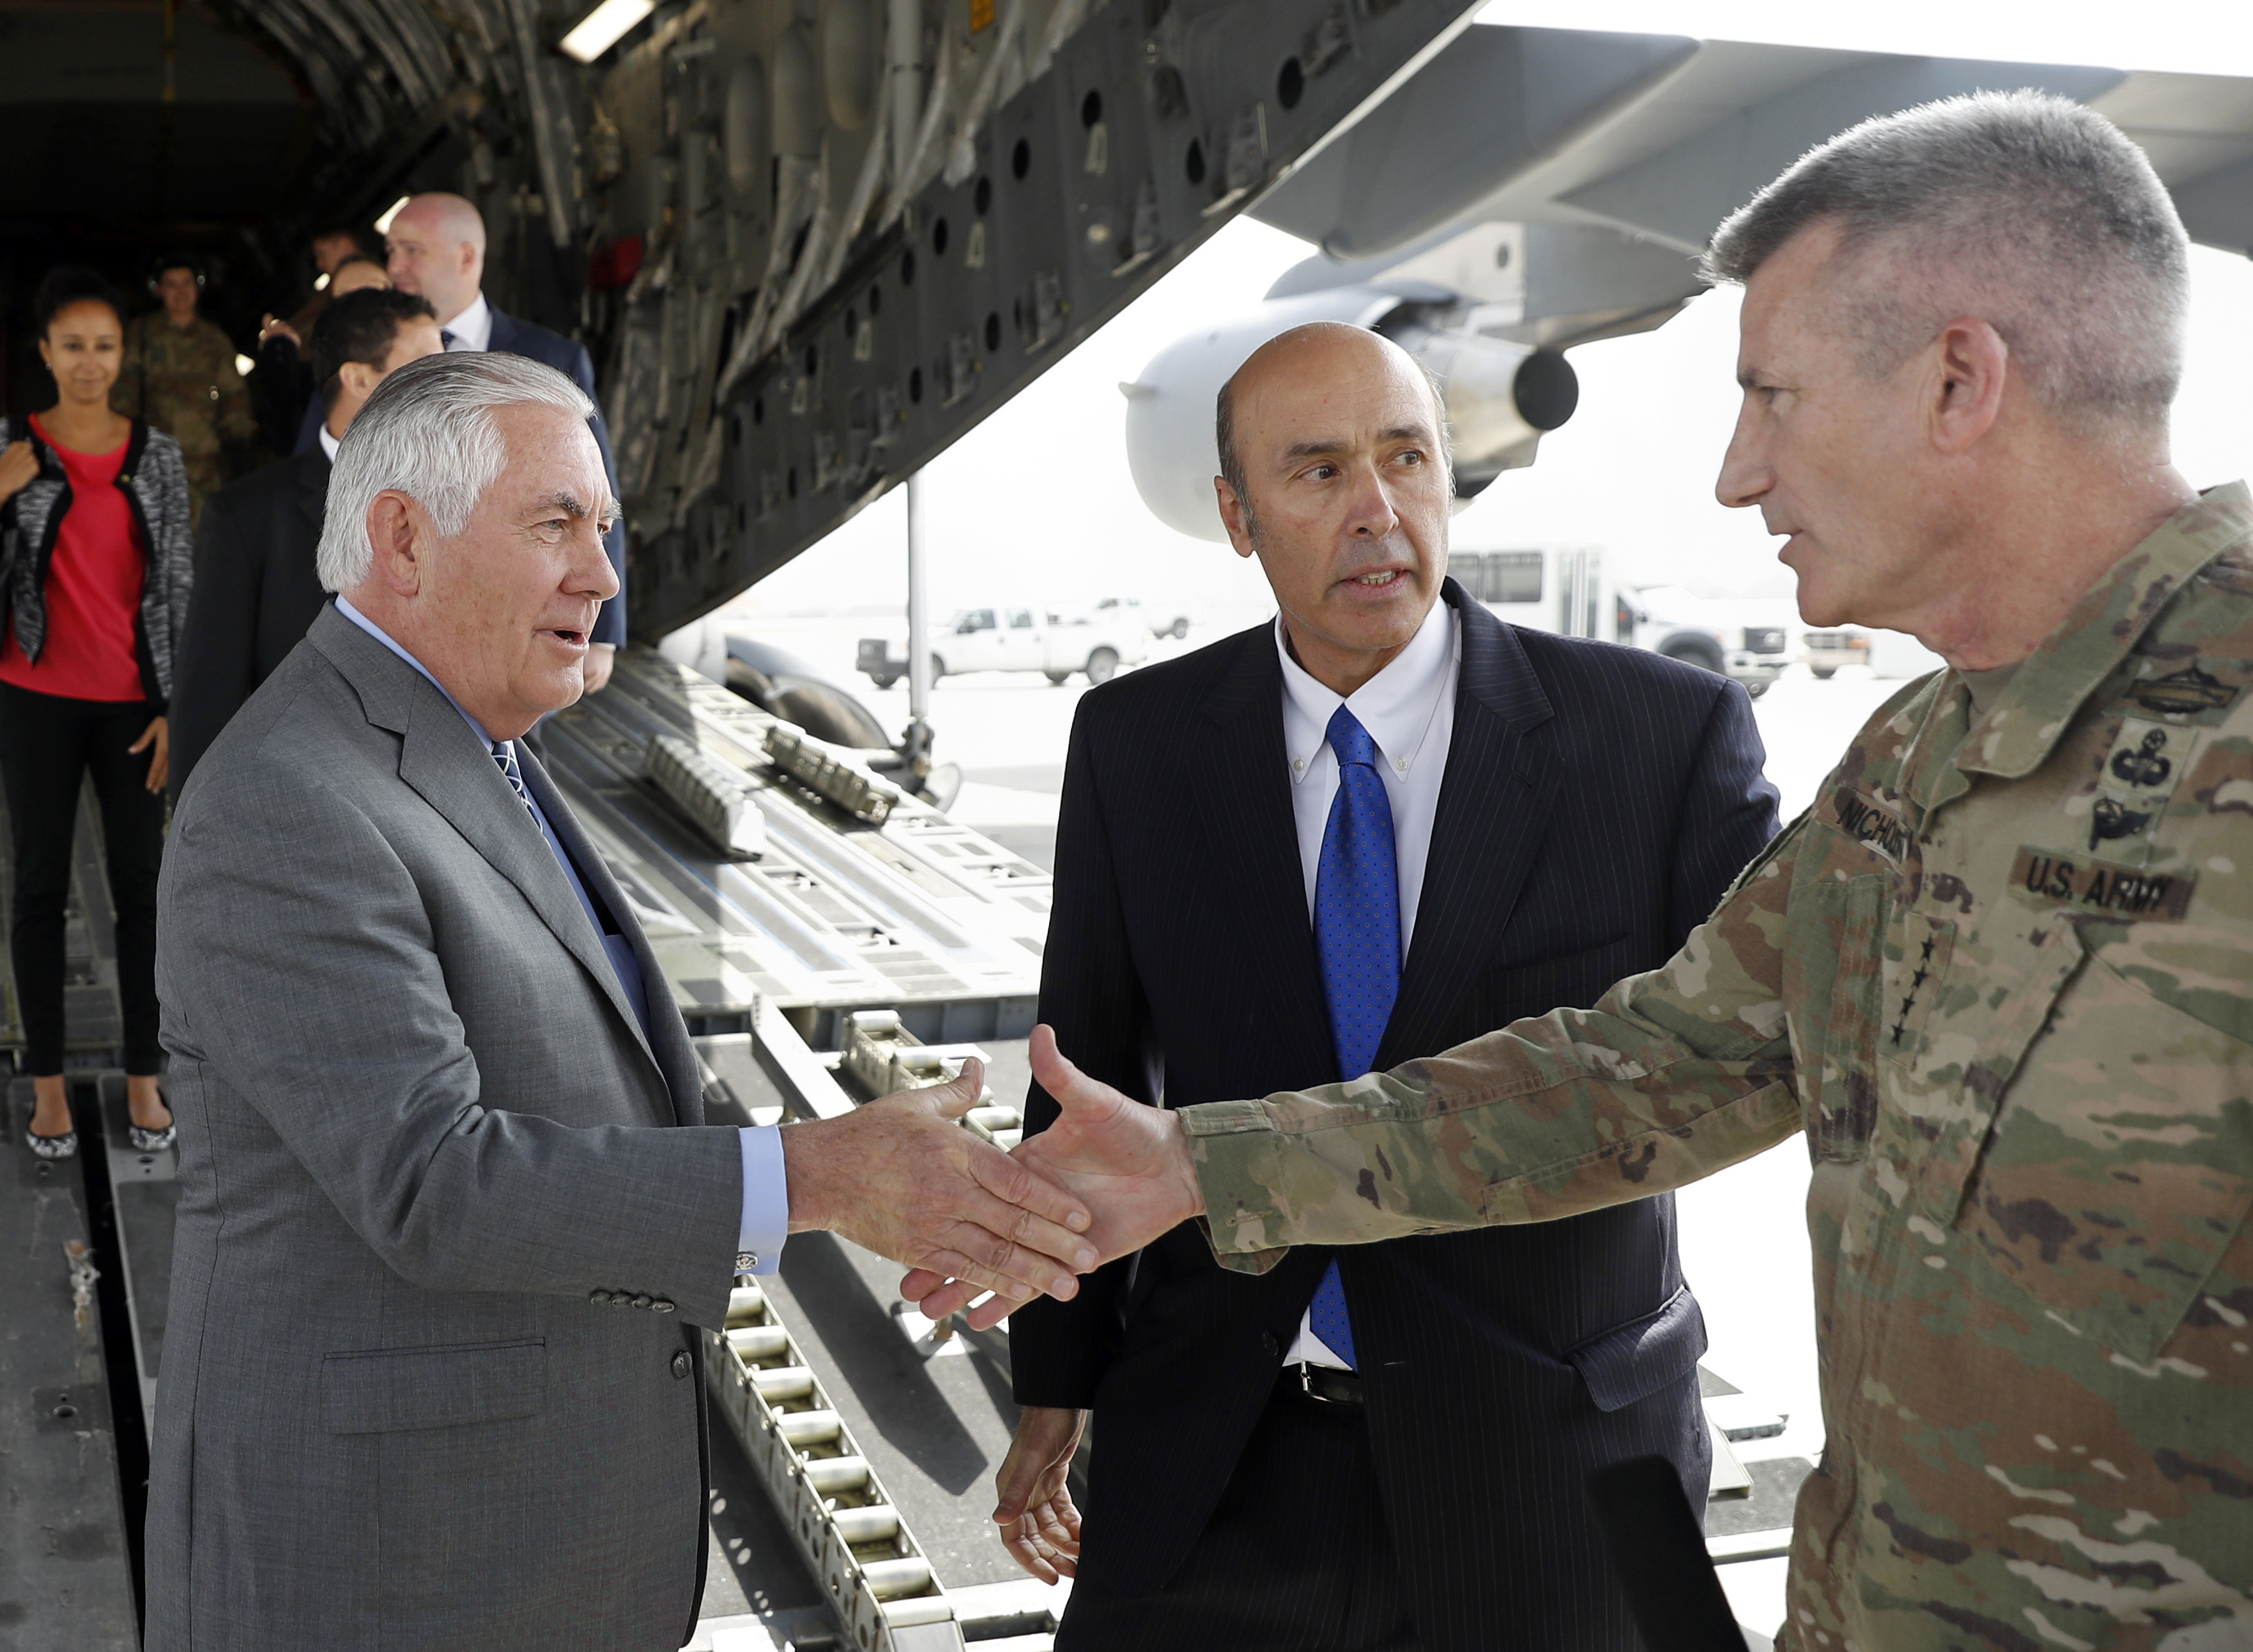 Secretary of State Rex Tillerson is greeted by Gen. John Nicholson, right, commander of Resolute Support, with Special Charge d'Affaires Amb. Hugo Llorens, as he arrives, Oct. 23, 2017, at Bagram Air Base, Afghanistan.